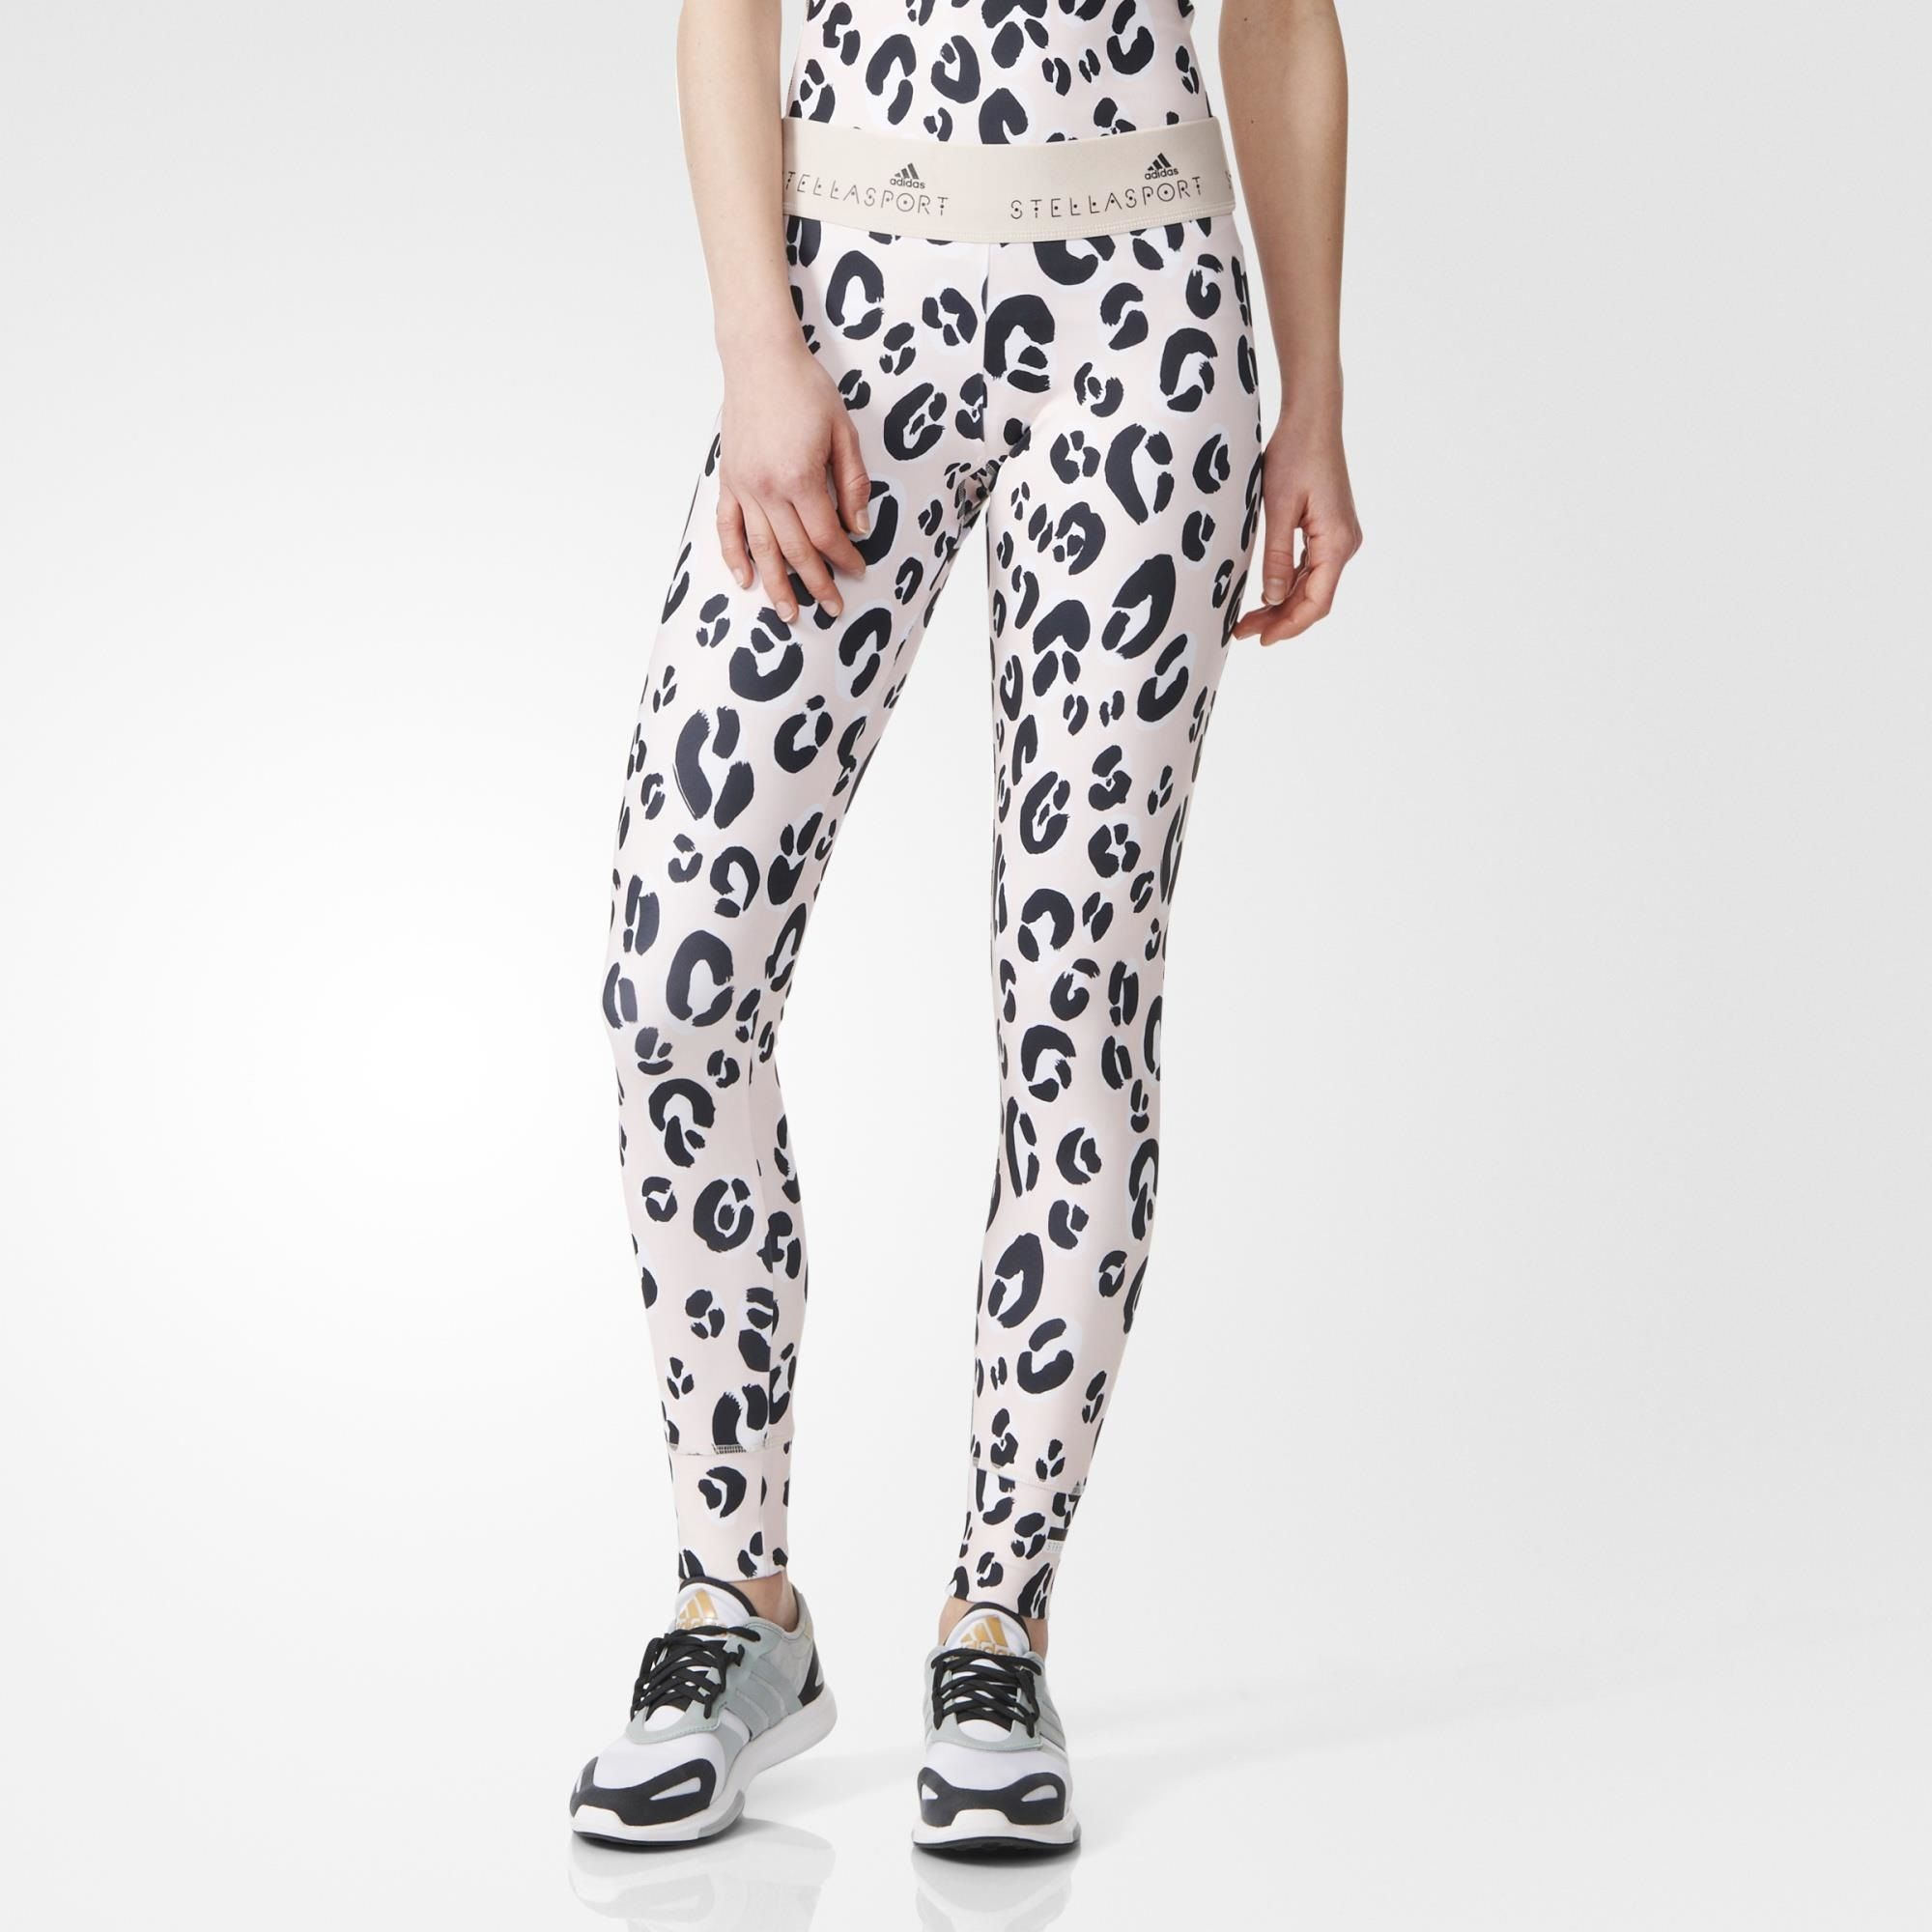 Designed in collaboration with Stella McCartney, these women's adidas  STELLASPORT training tights display her signature